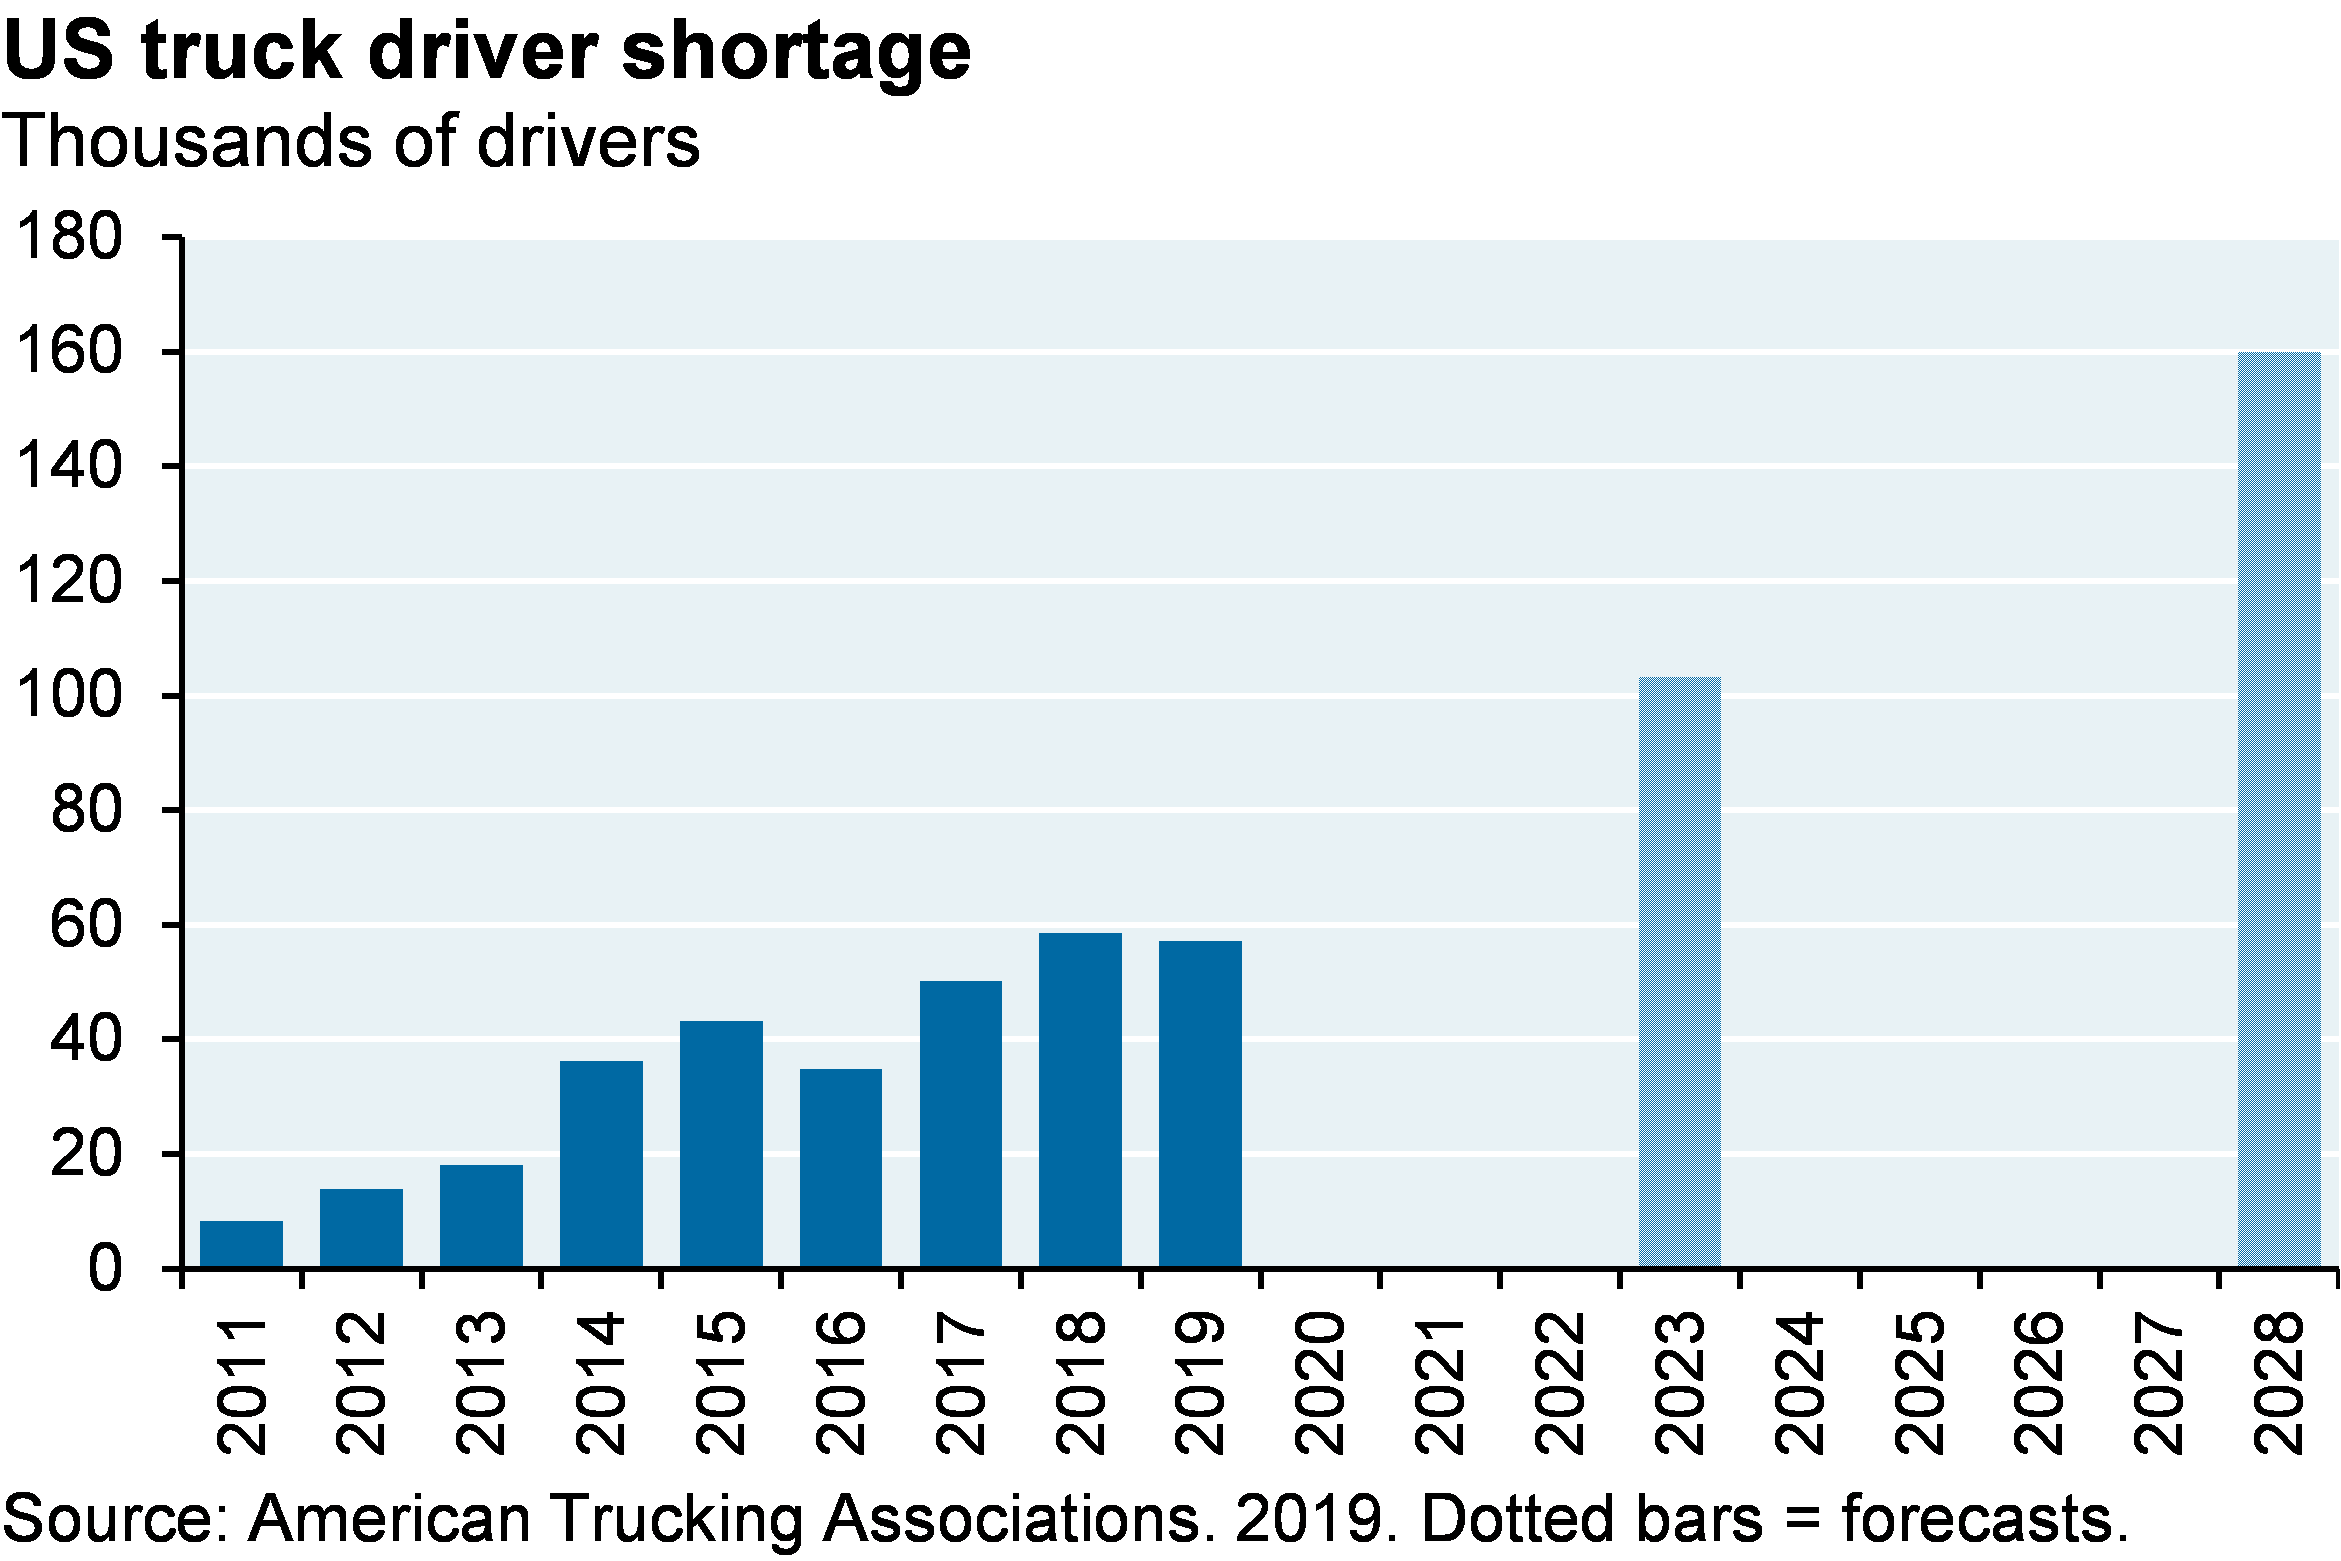 Bar chart which shows the truck driver shortage since 2011. The chart illustrates how there is a growing trucker shortage in the US, which is only projected to increase in the next few years. By 2028 the American Trucking Associations project the shortage will grow to 160,000 drivers.